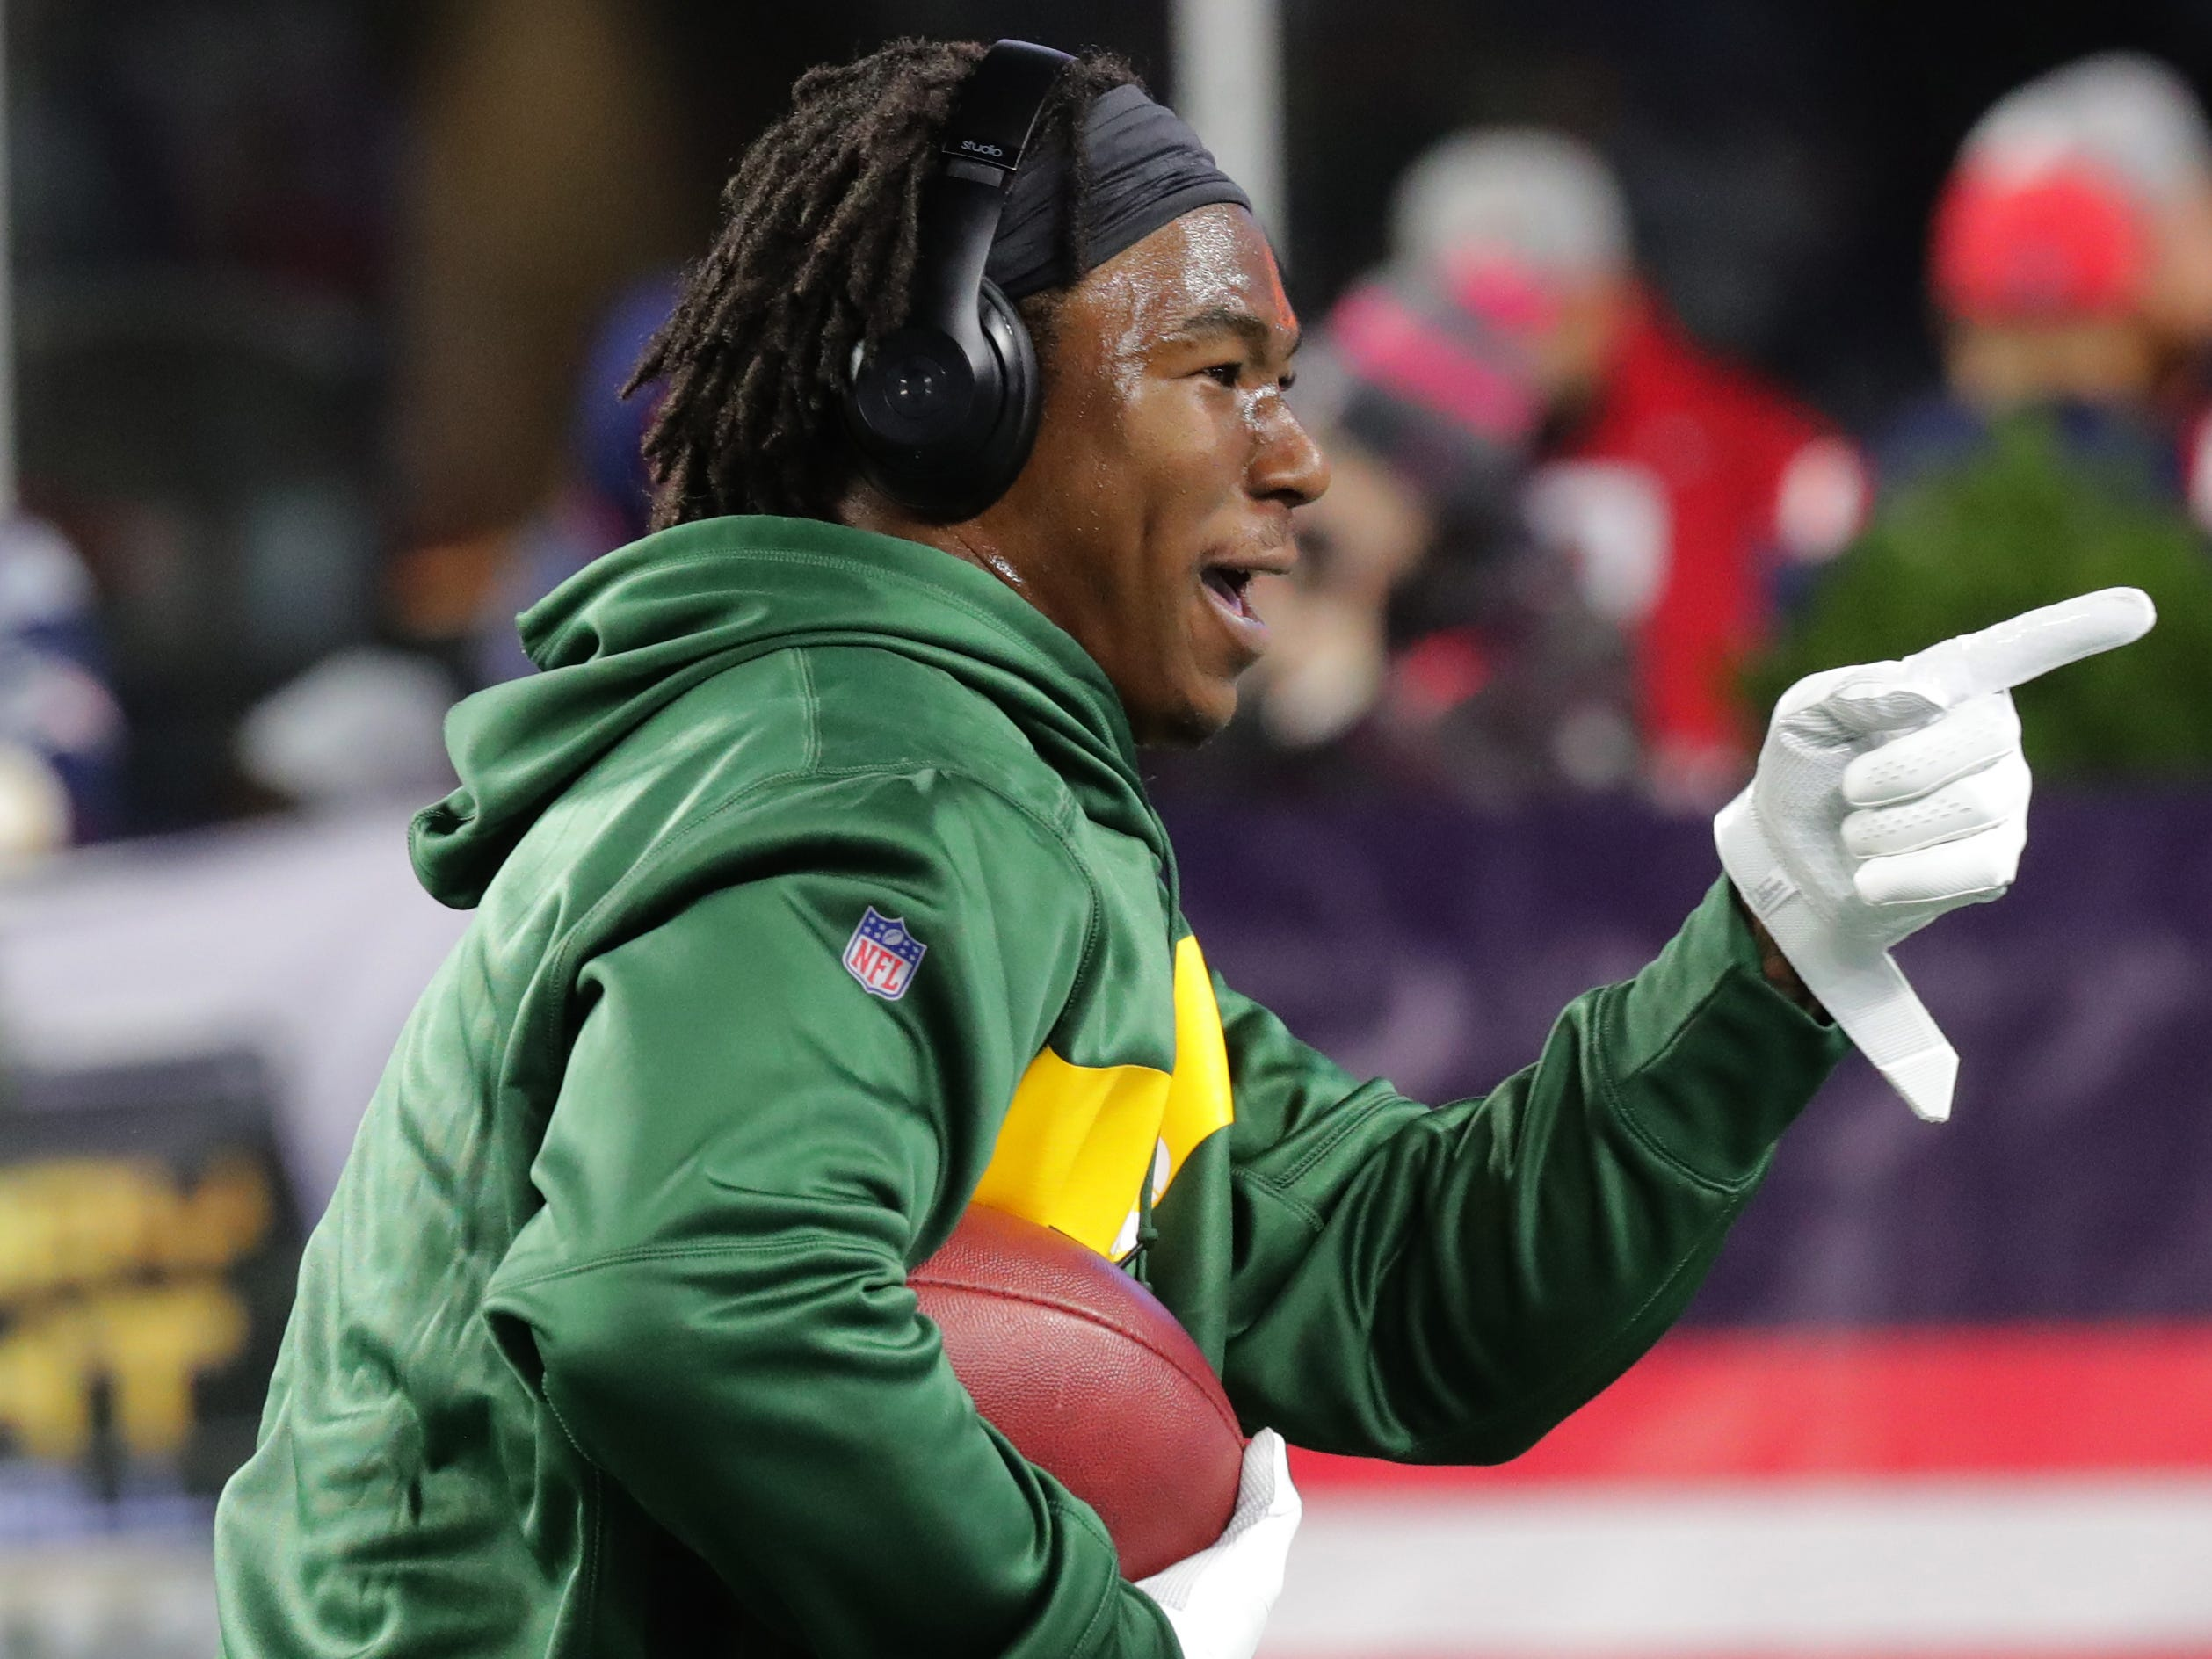 Green Bay Packers running back Jamaal Williams points to a Packers fan in the stands to play catch with before their game against the New England Patriots Sunday, November 4, 2018 at Gillette Stadium in Foxborough, Mass.